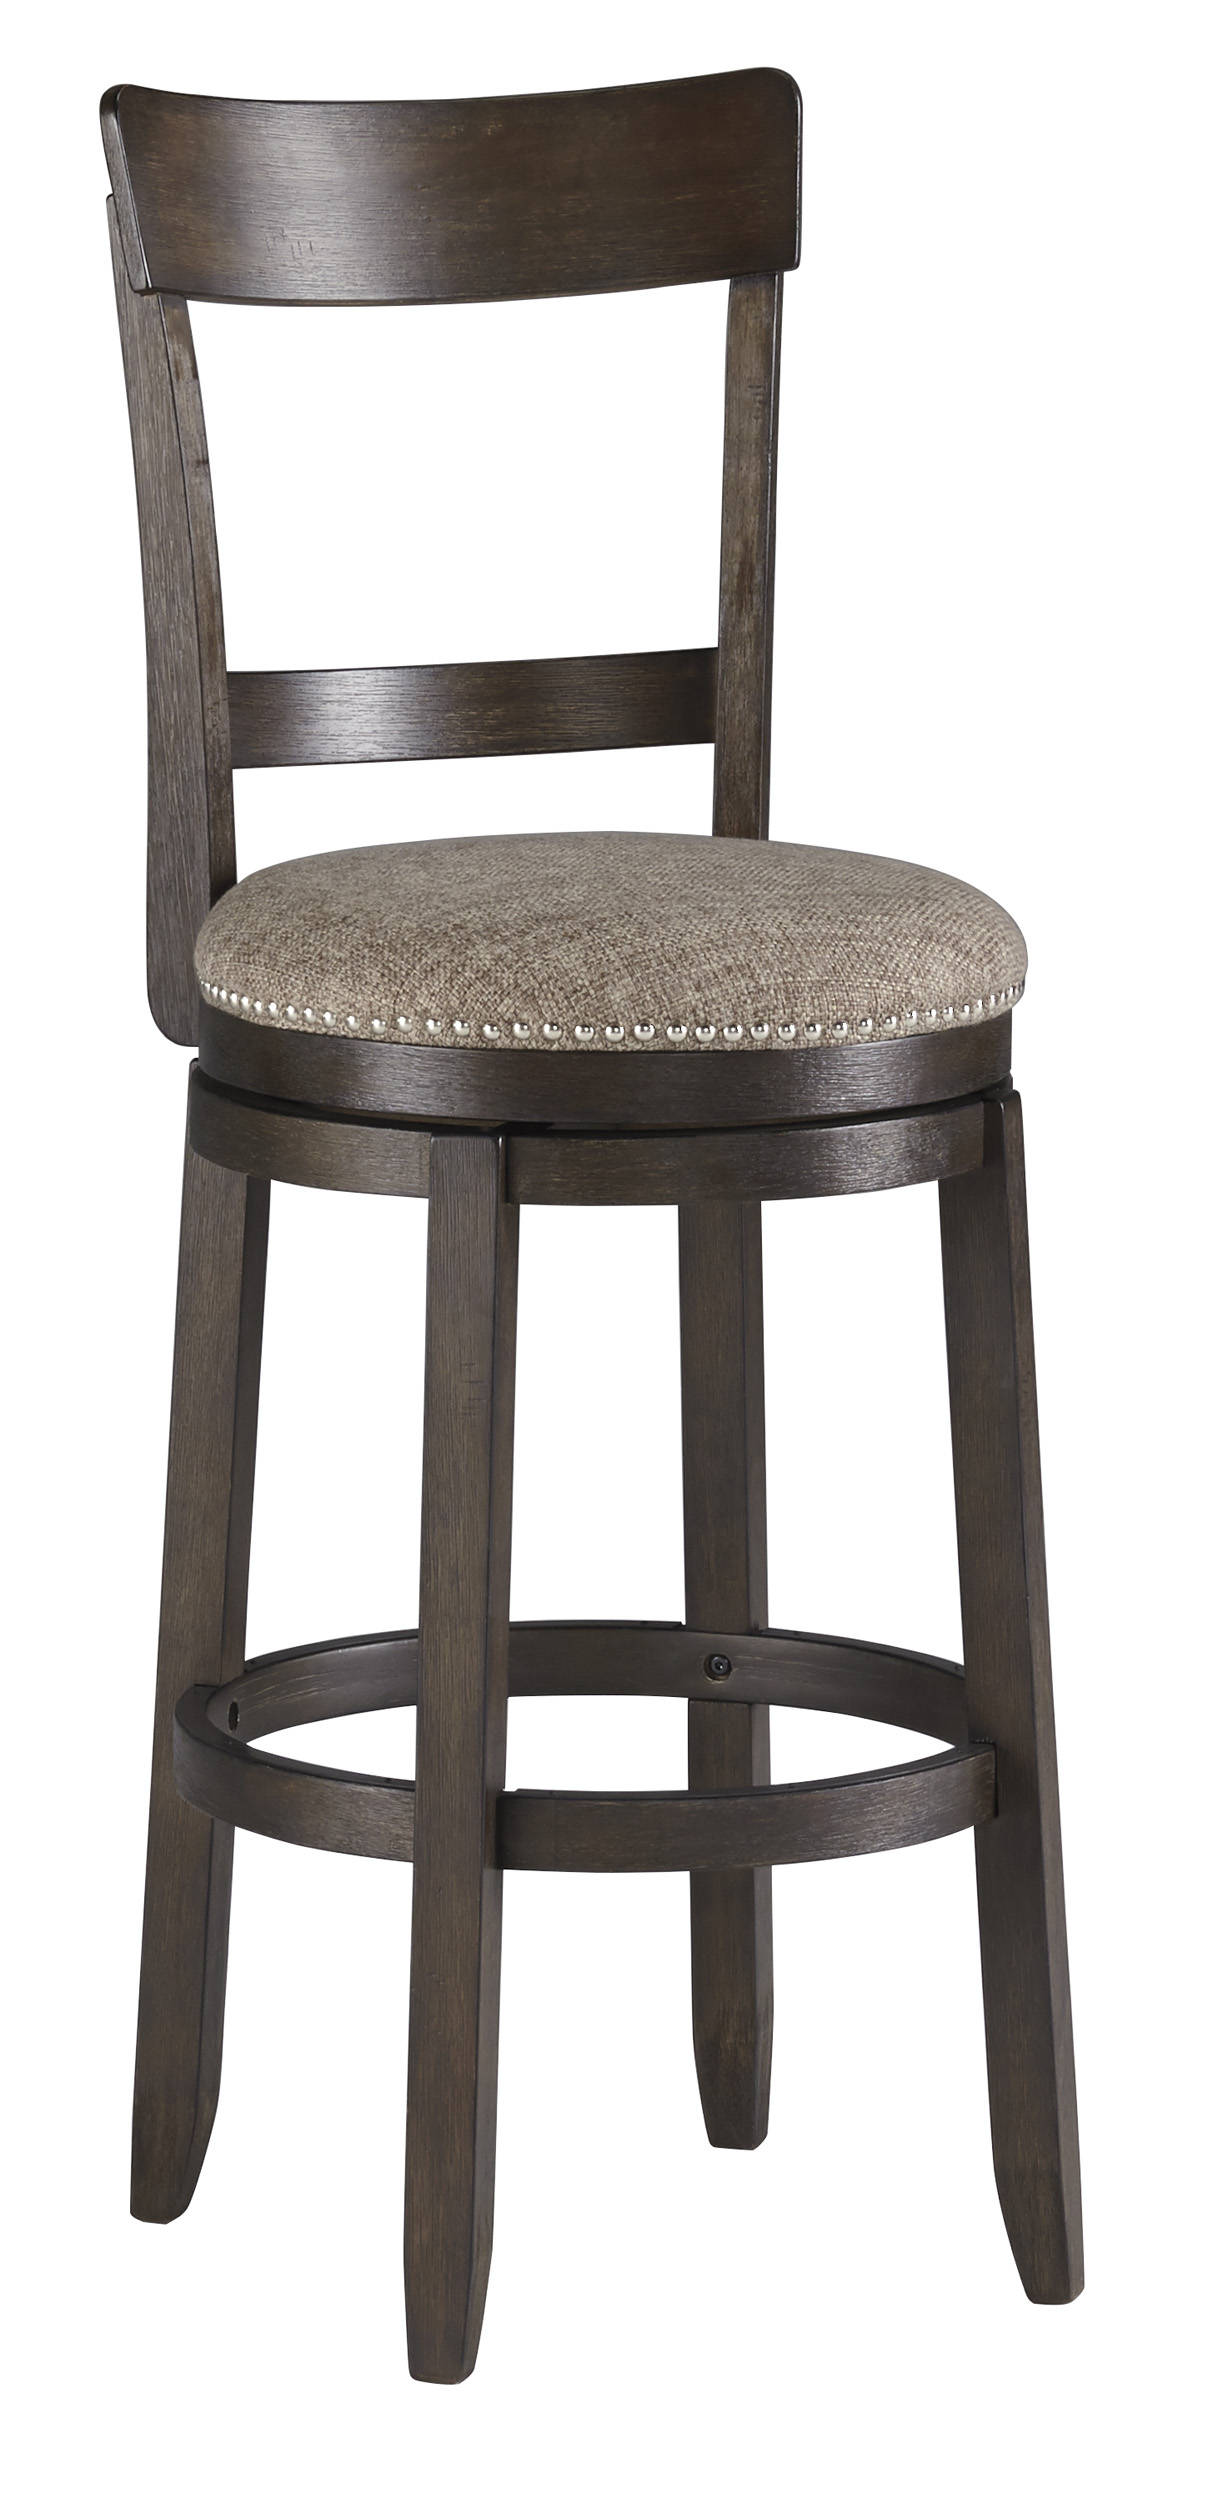 2 Ashley Furniture Drewing Brown Tall Upholstered Swivel Barstools